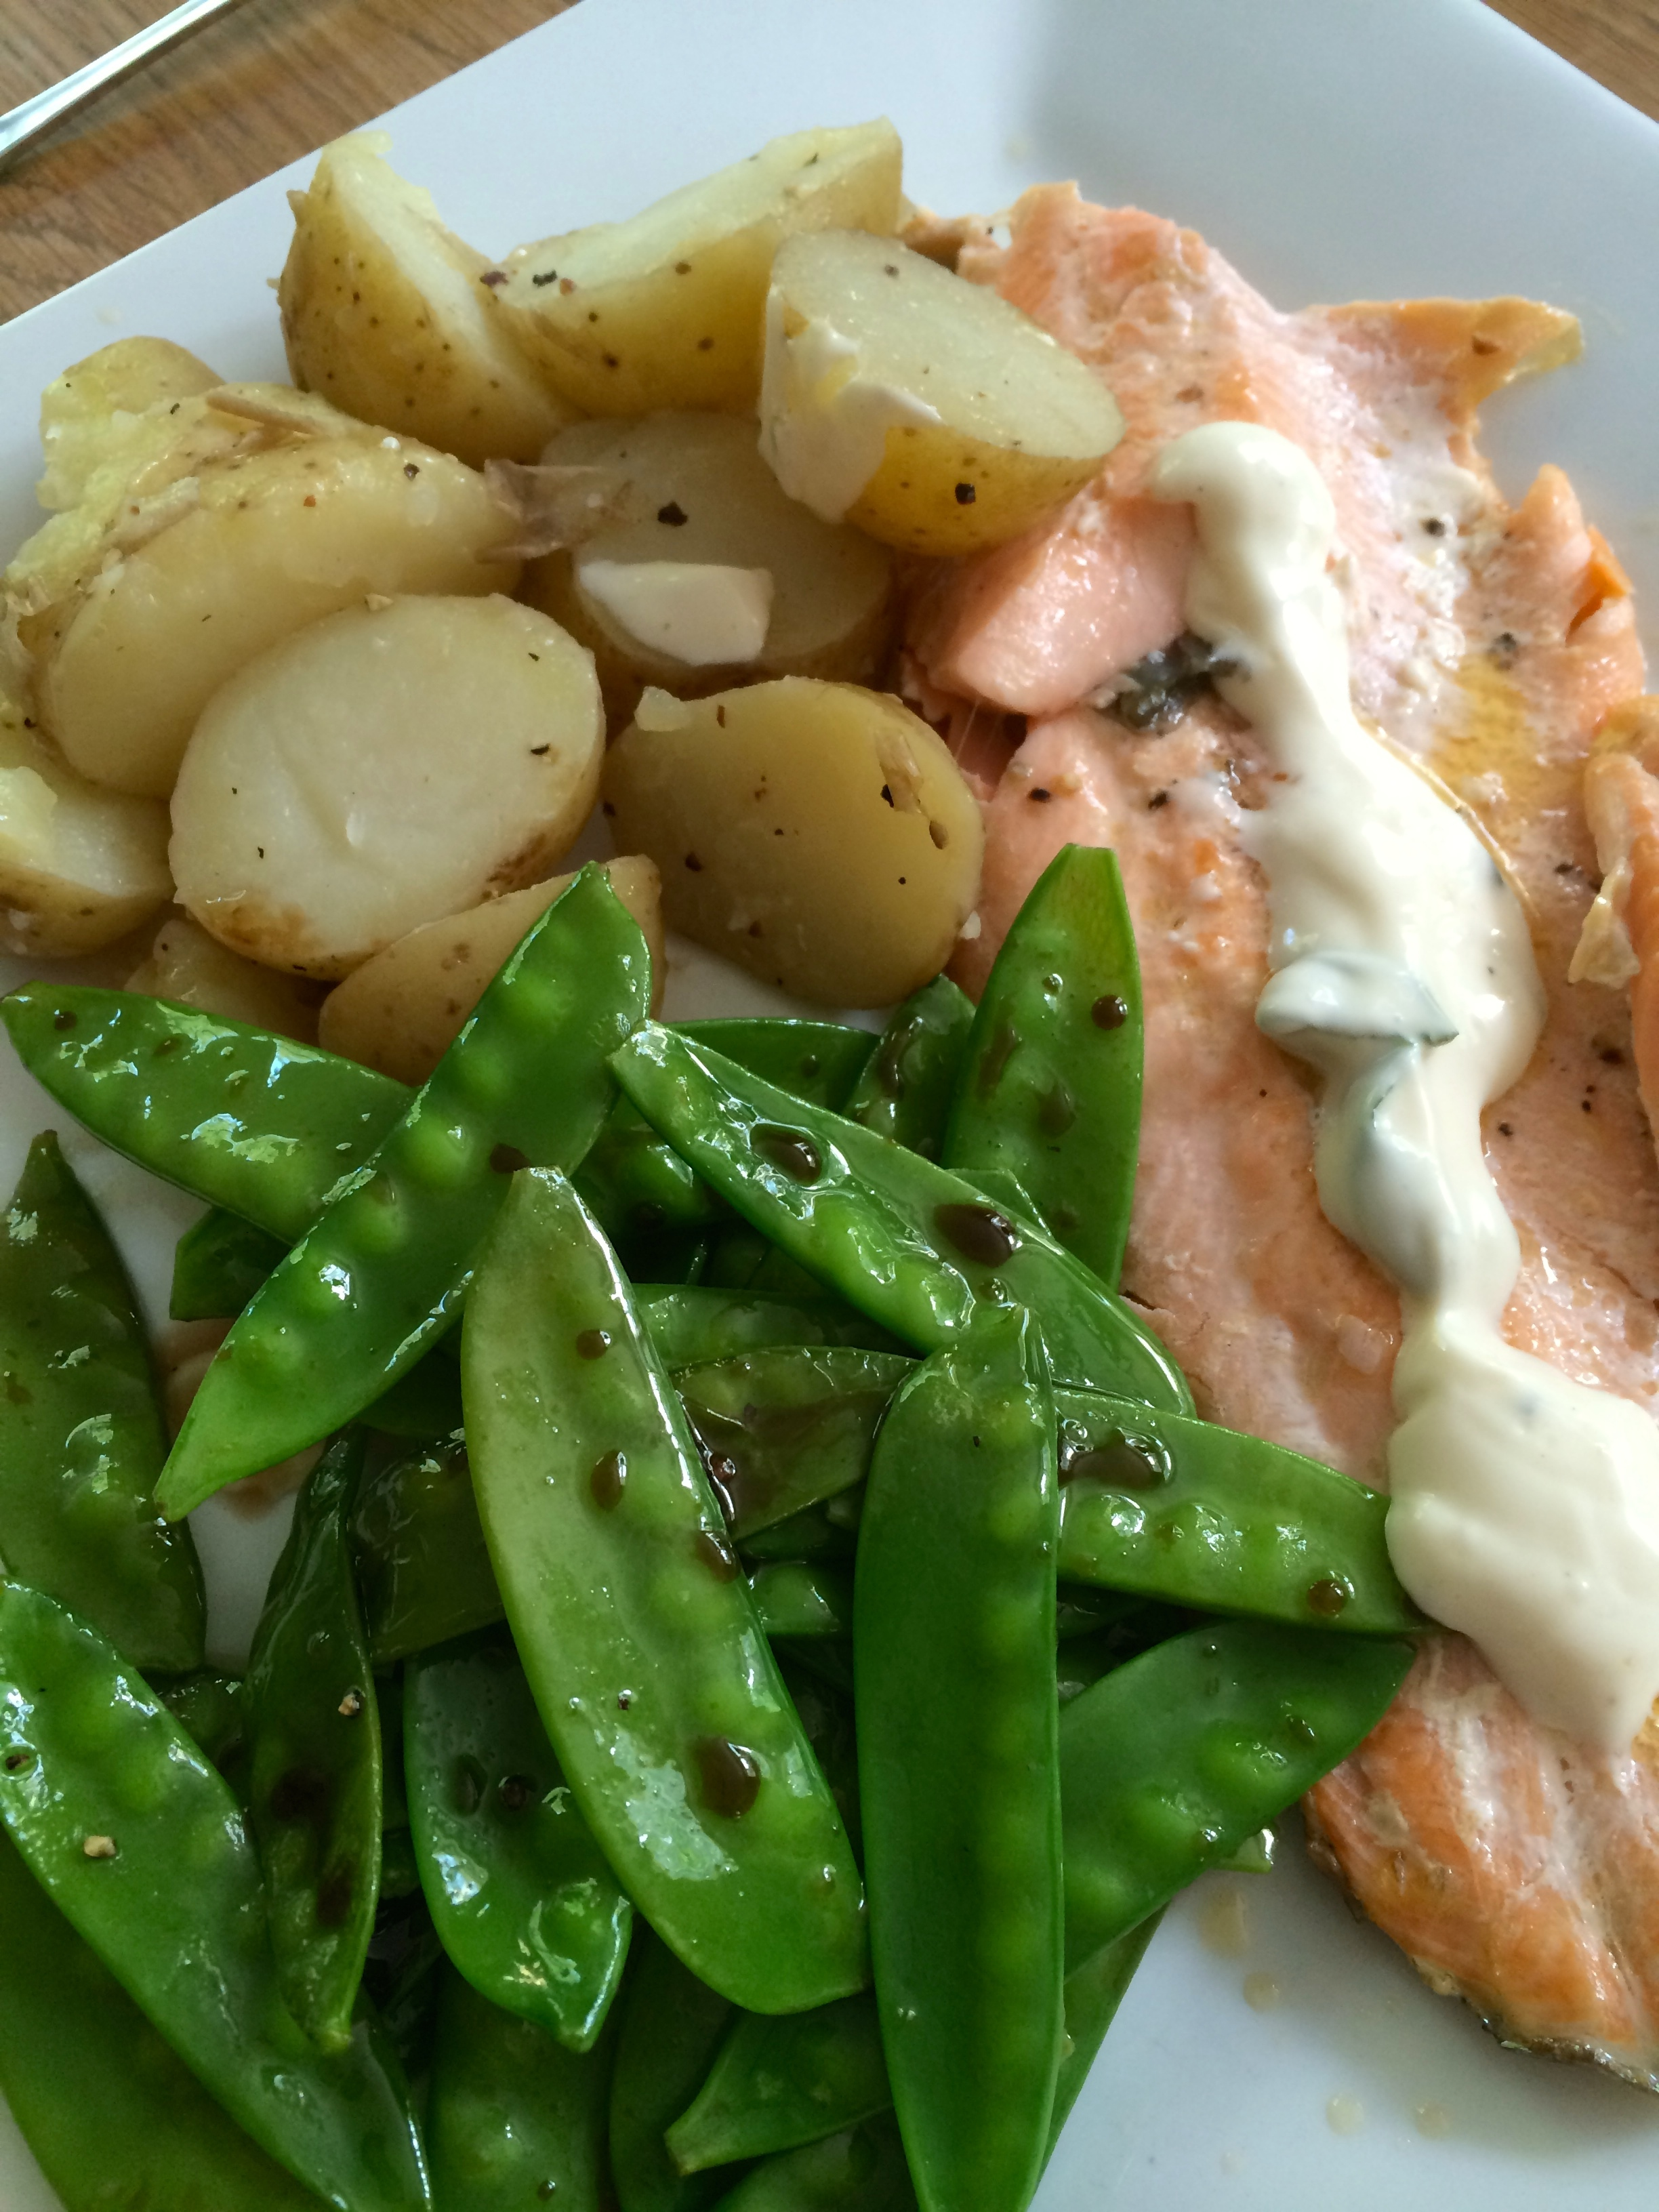 Pan fried trout fillets with a basil and lime mayo, balsamic mange tout and buttered Jersey Royals…